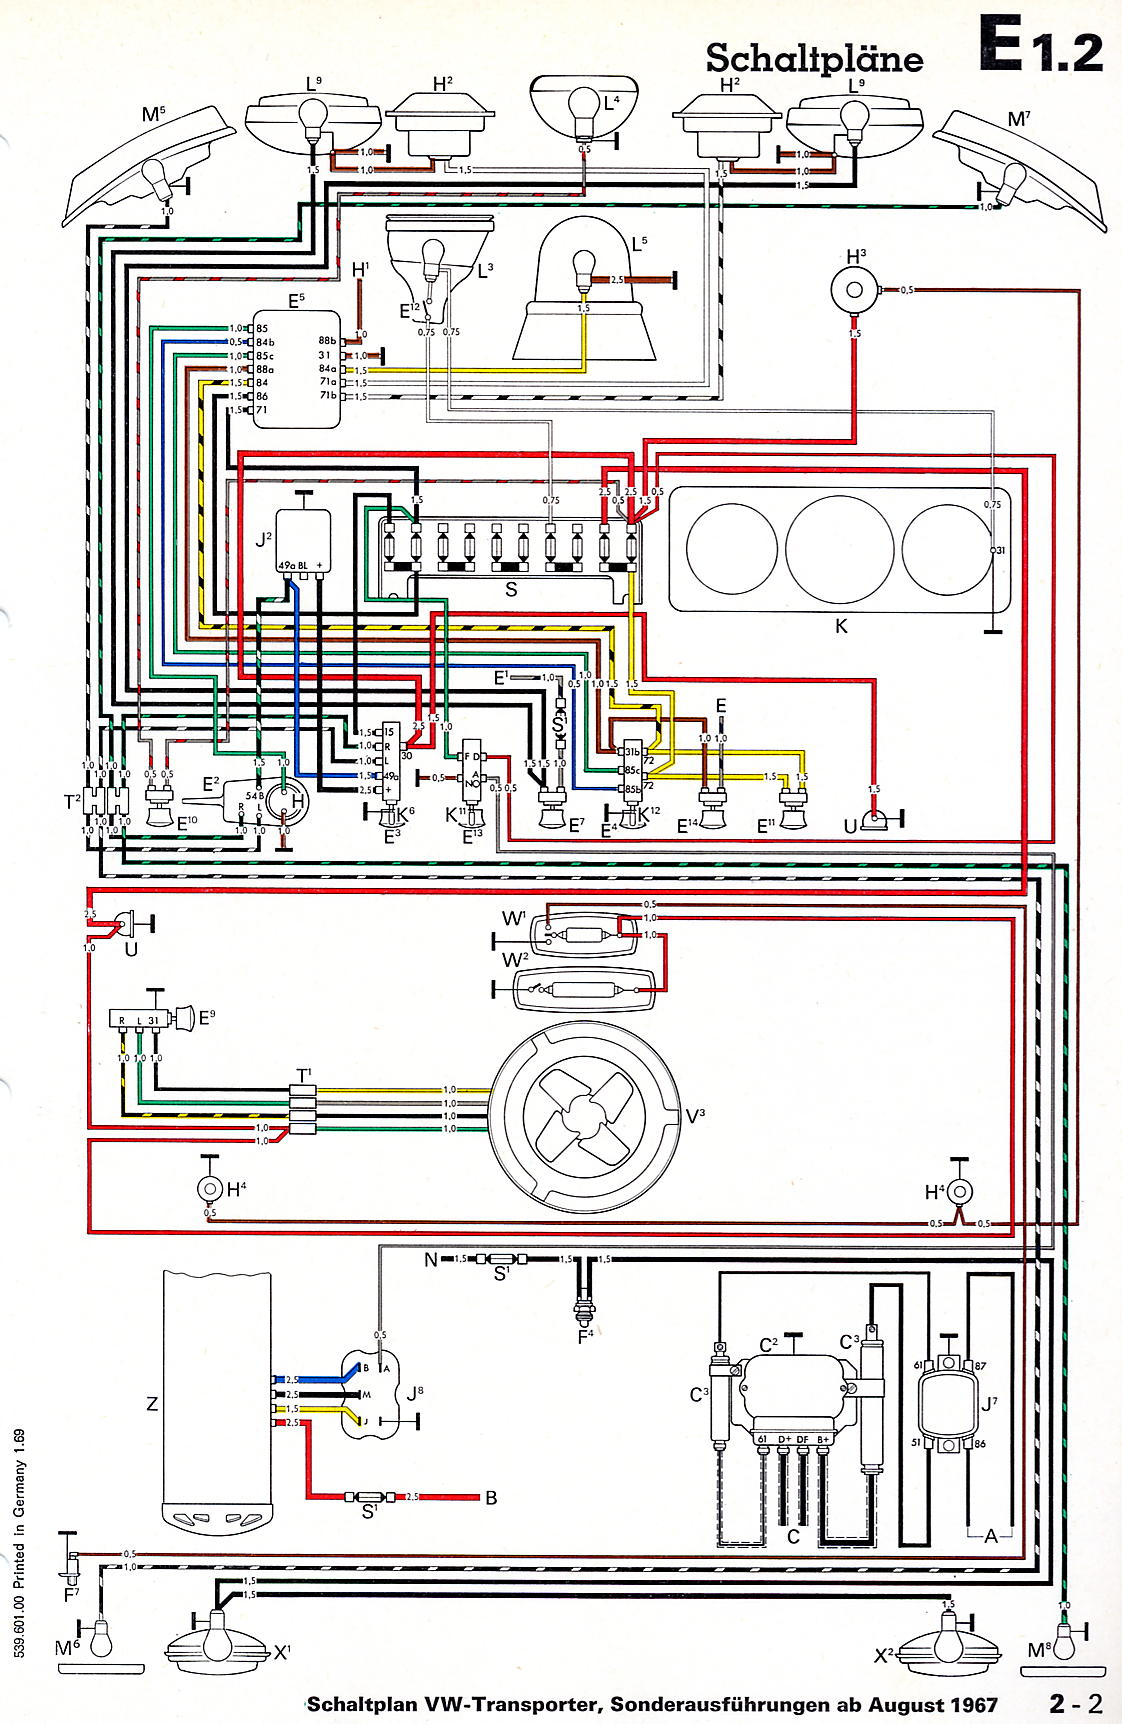 Transporter_from_August_1967_aditional_items vw wiring diagrams vw t4 wiring diagram pdf at nearapp.co